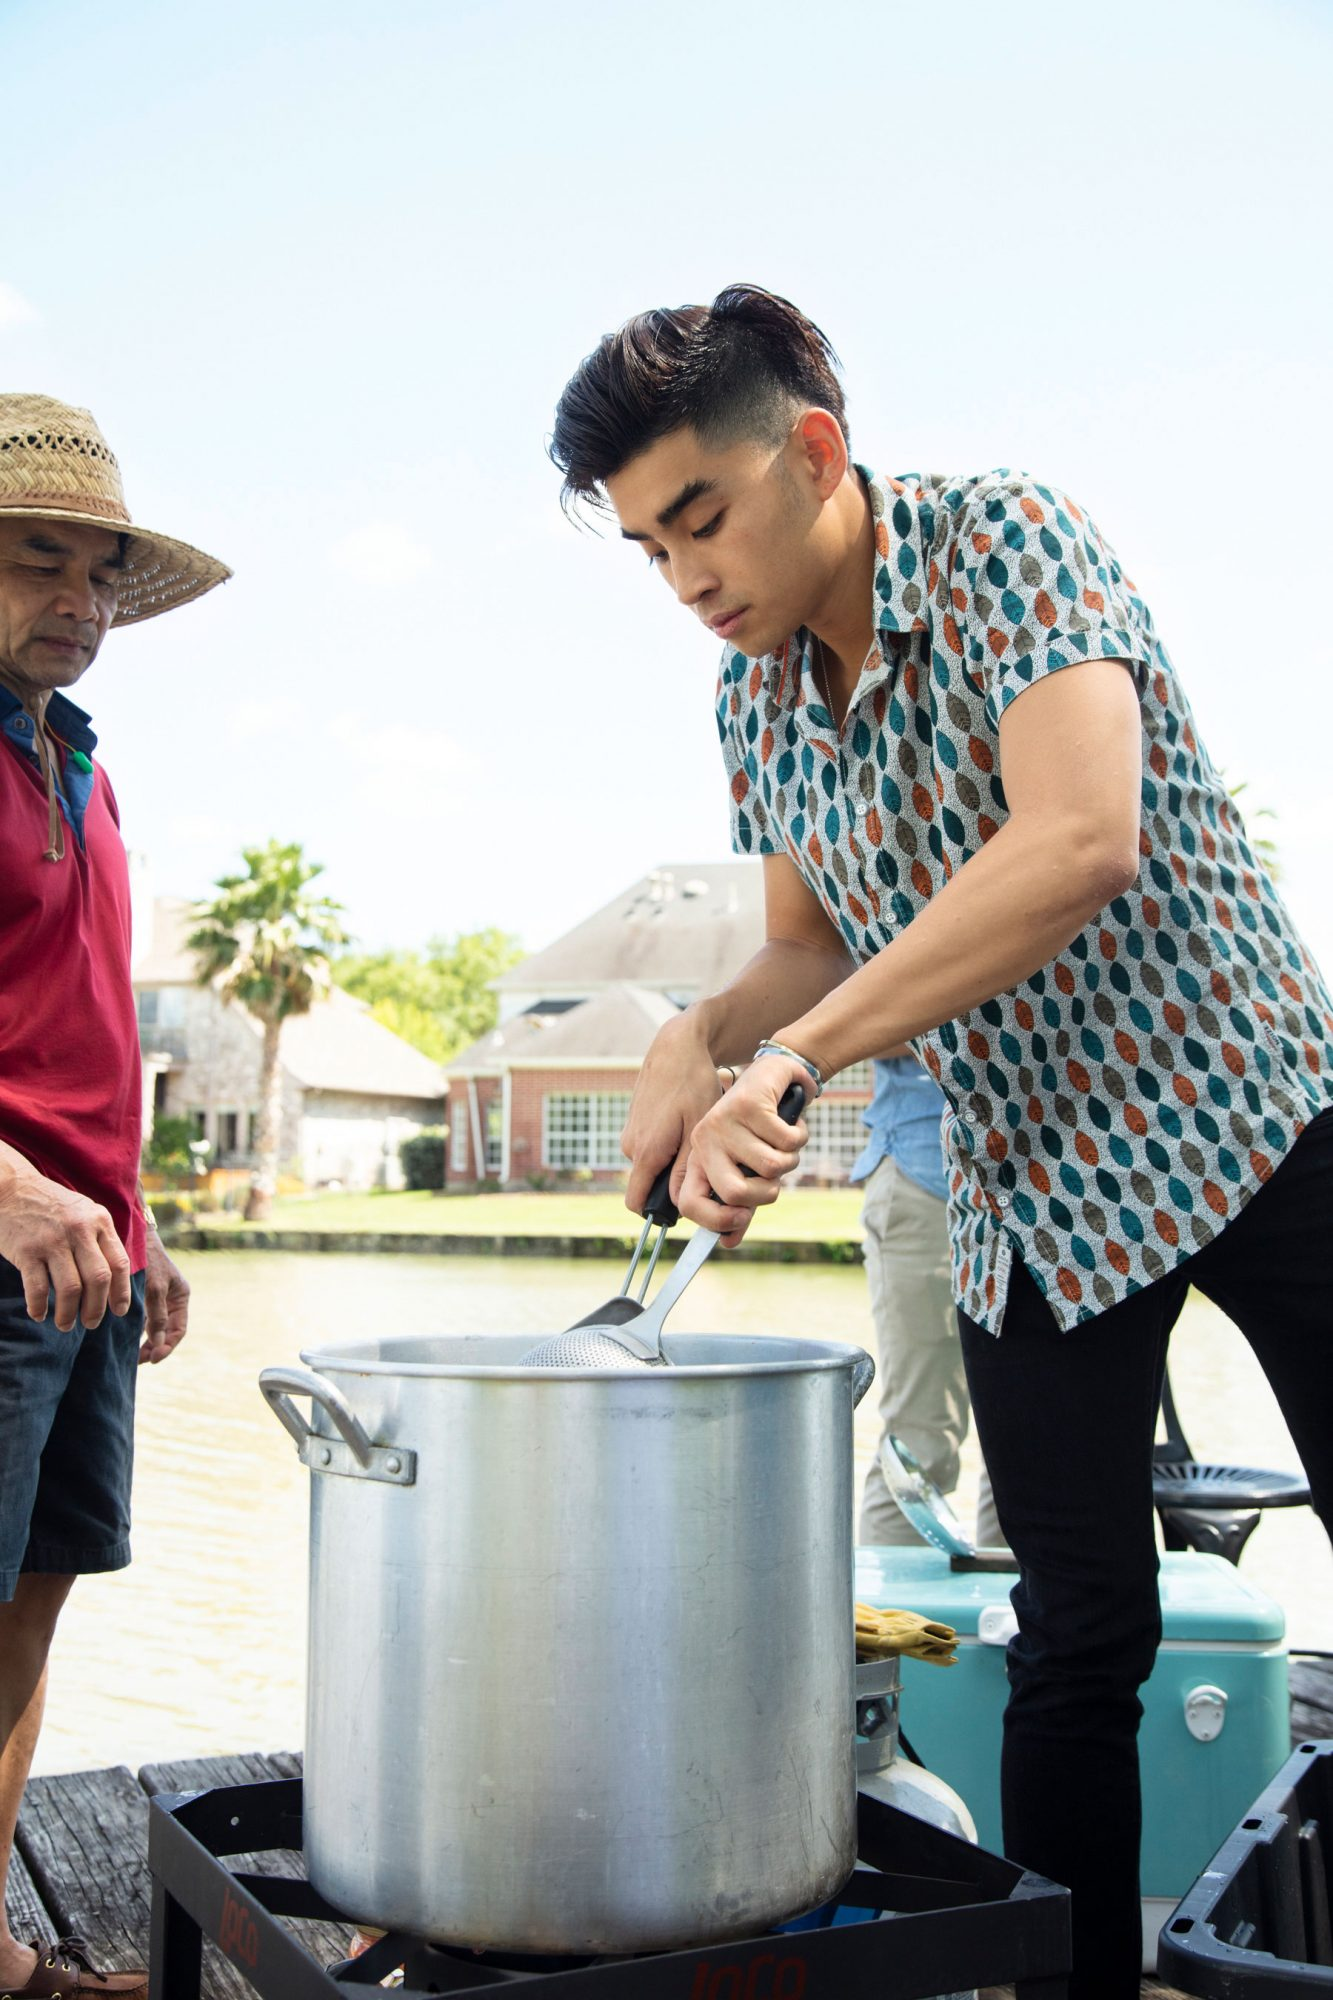 Dan Q. Dao Cooking Crawfish in Stockpot at Family's Viet-Cajun Crawfish Boil